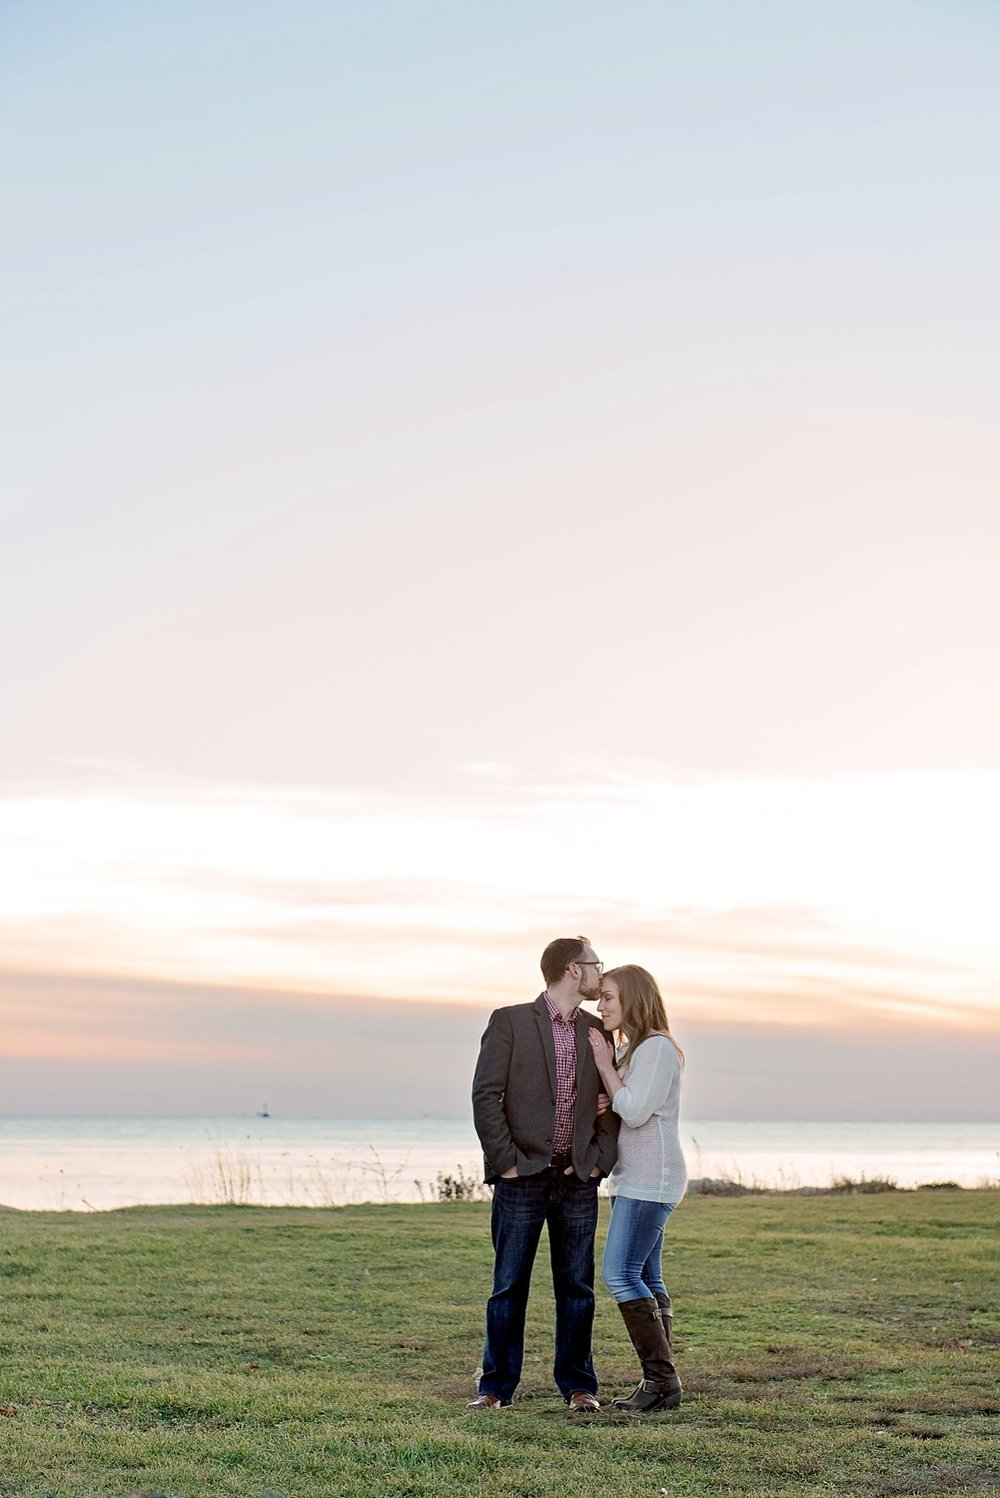 Harkness sunset engagement photos